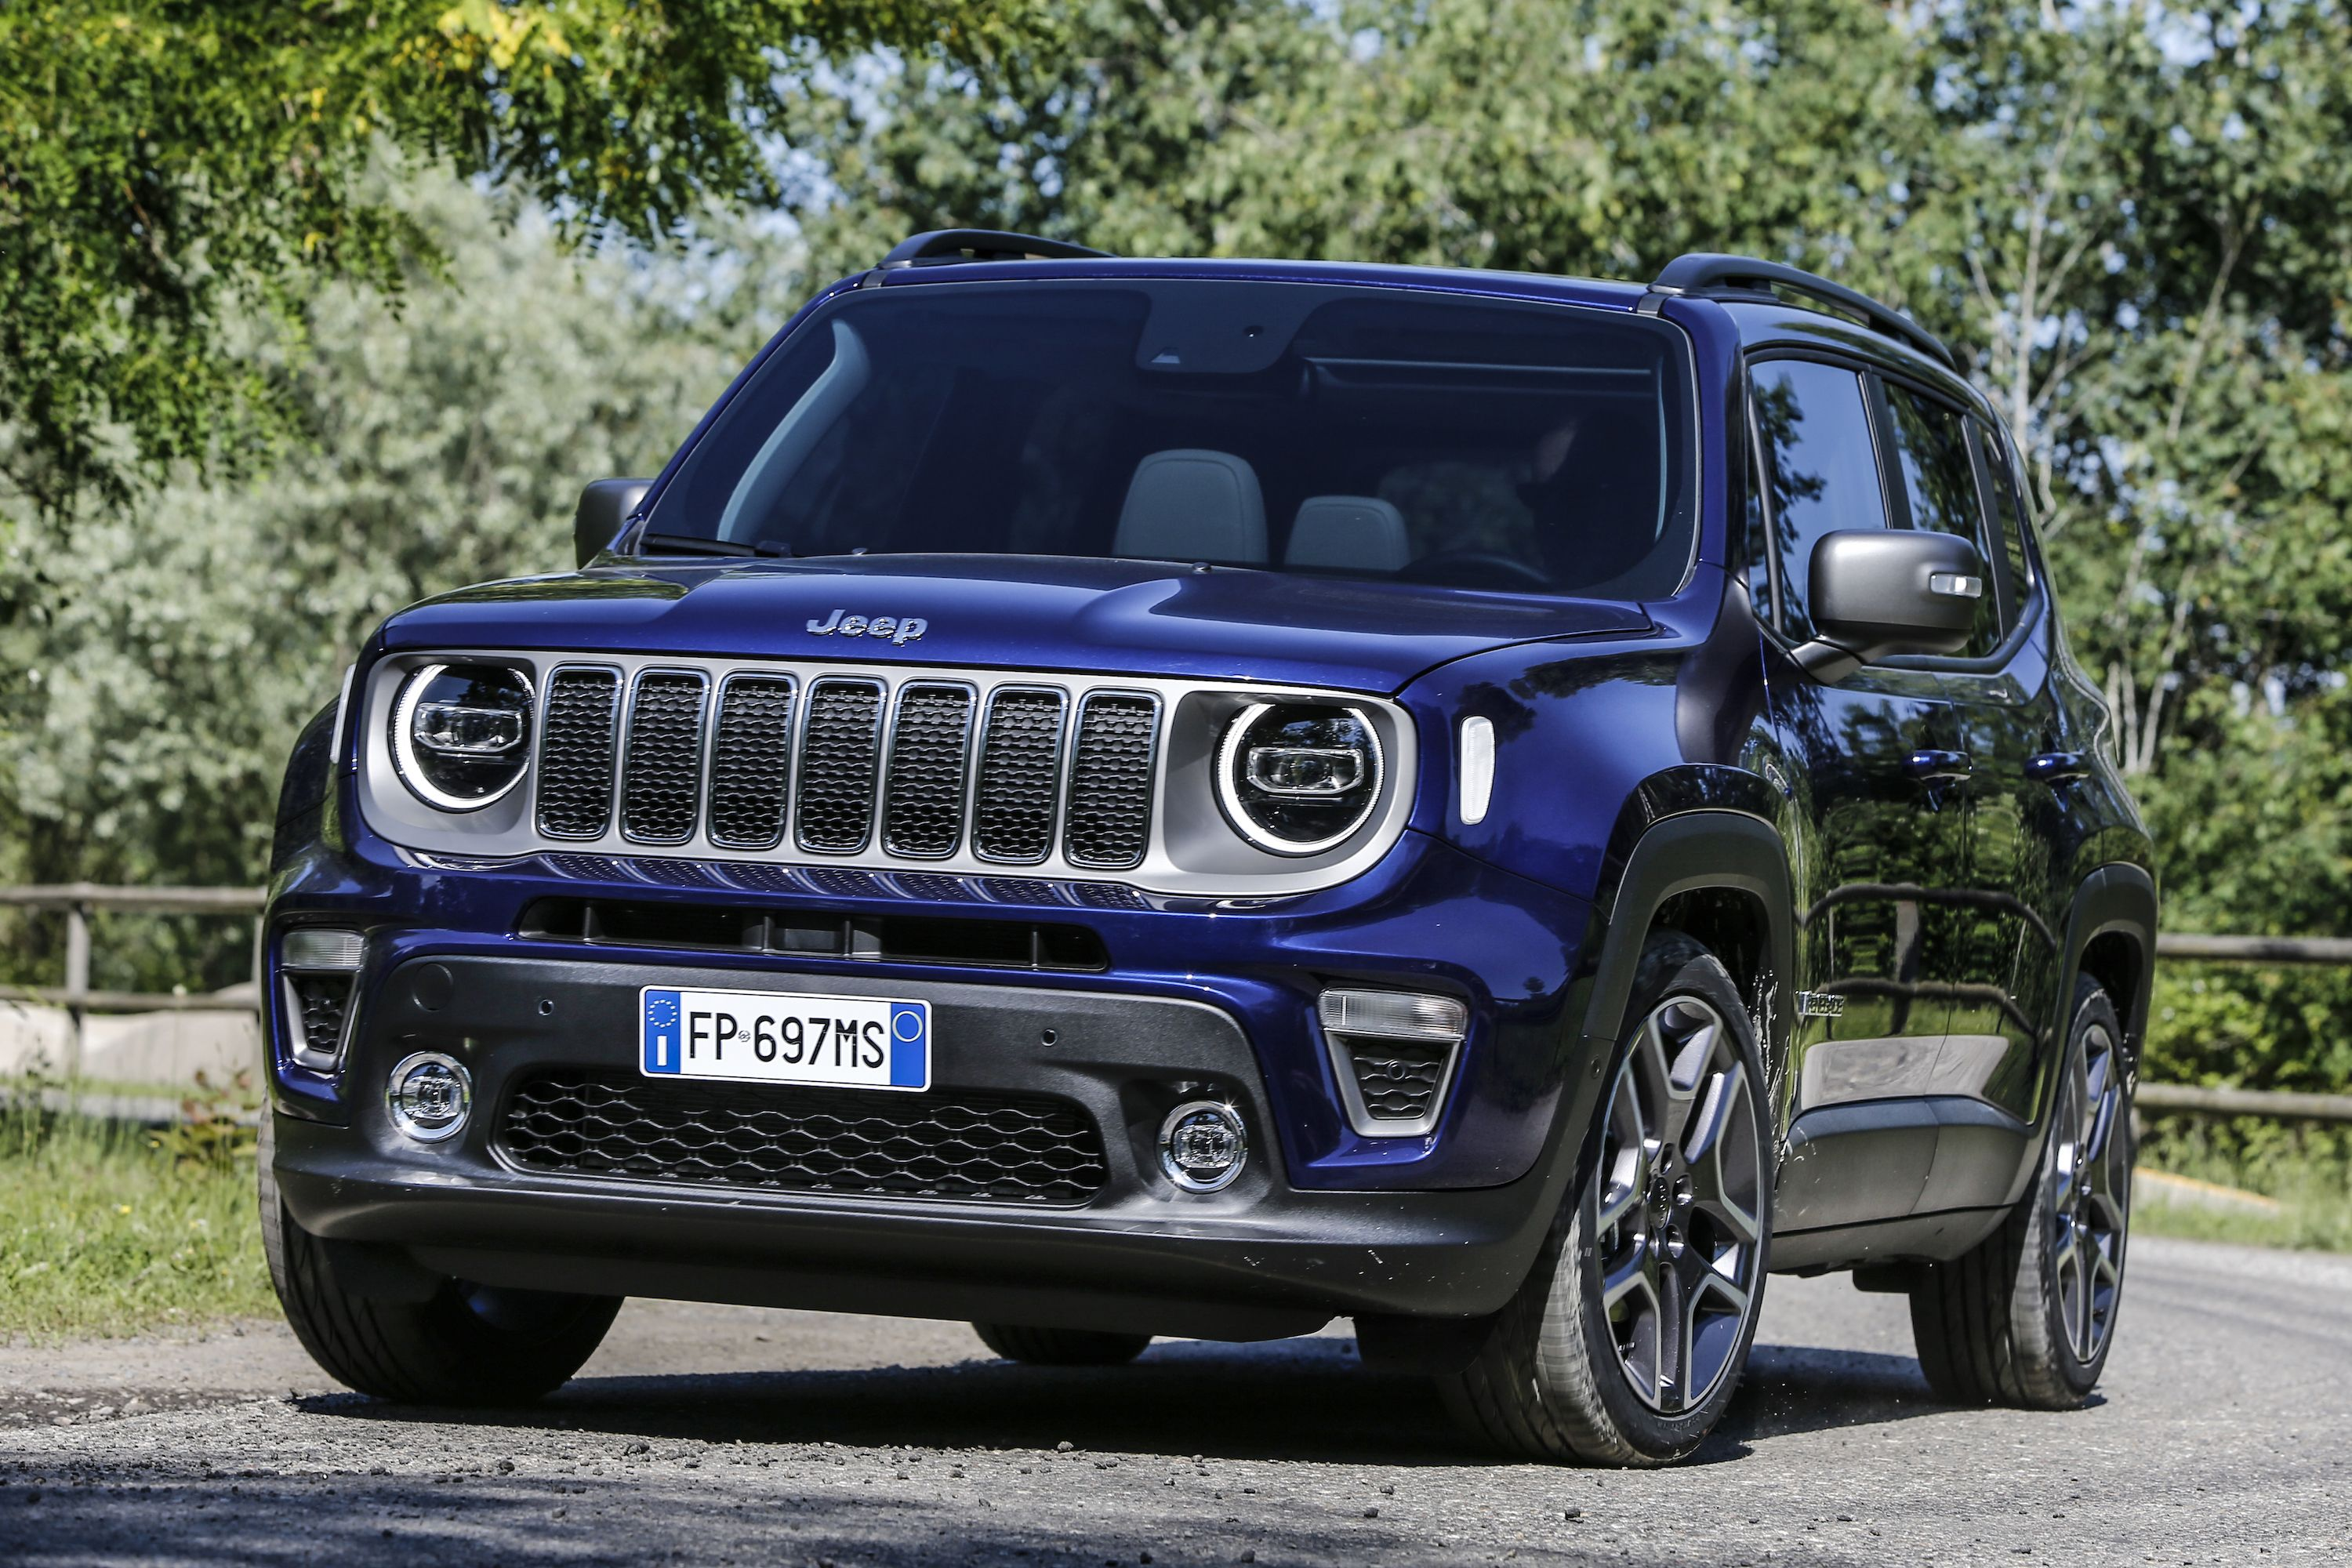 Spec 2019 Jeep Renegade Offered With New Engines Jeep Renegade Jeep Renegade Price Jeep